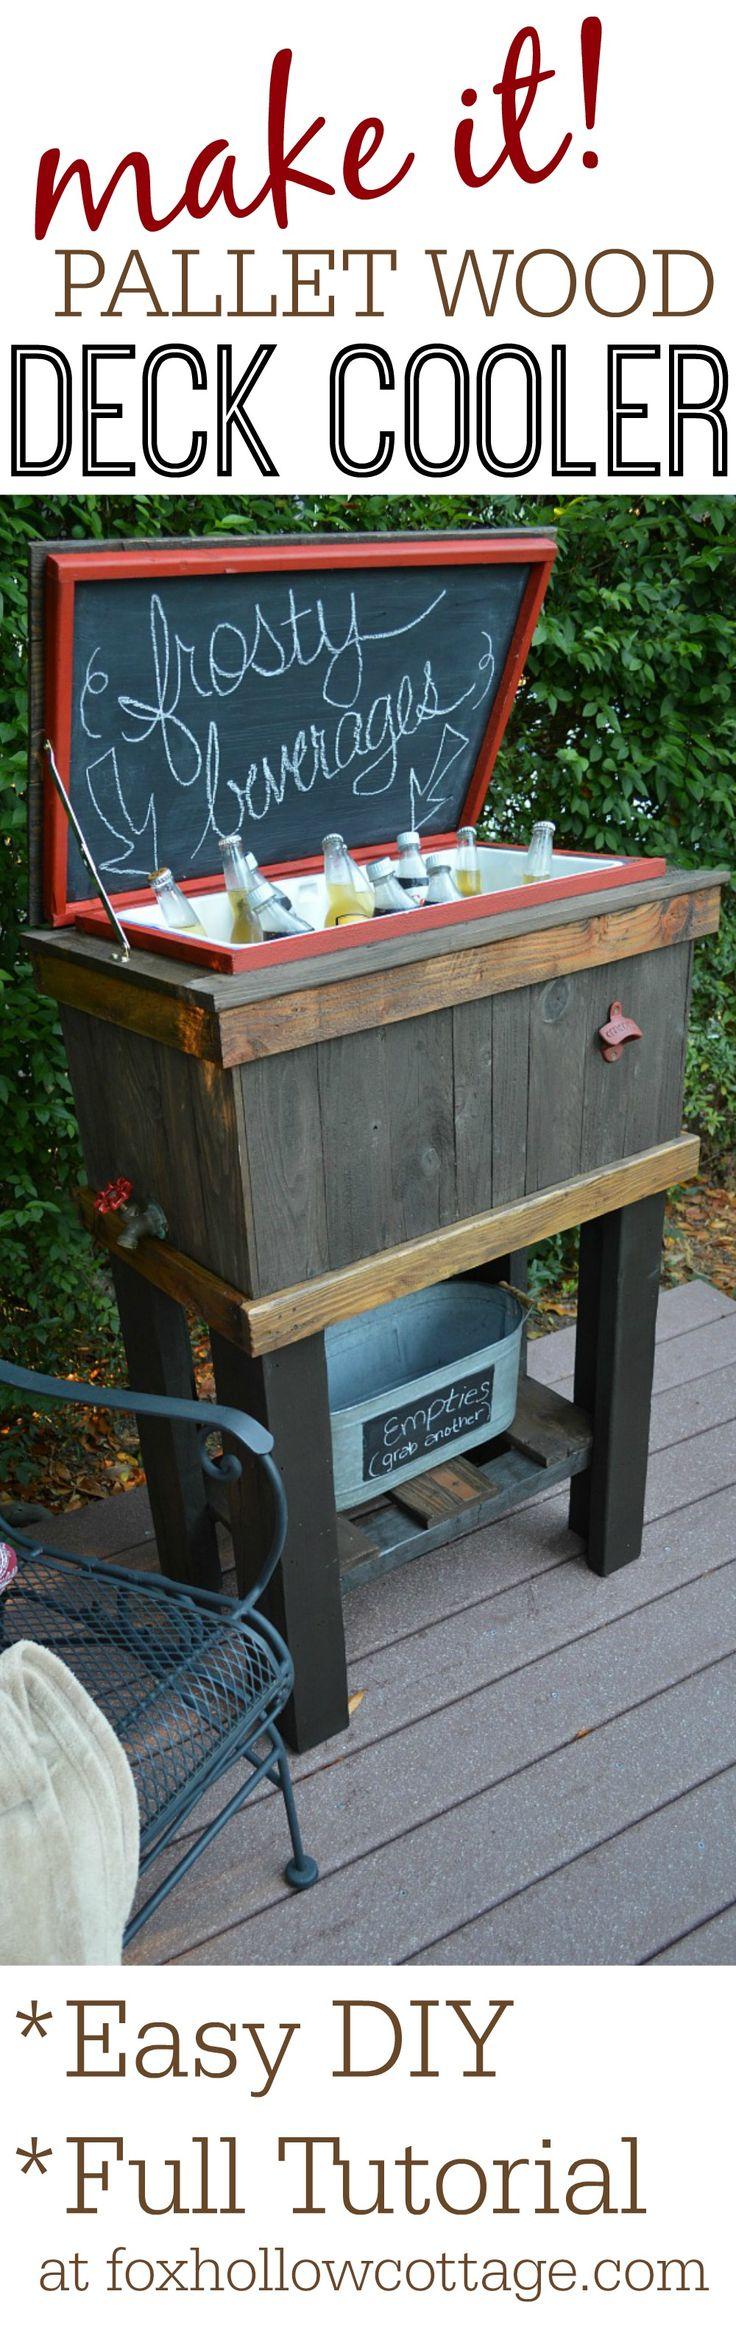 How To Build A Wood Cooler Stand | DIY Weekend Project Idea @homedepot @scotchblue